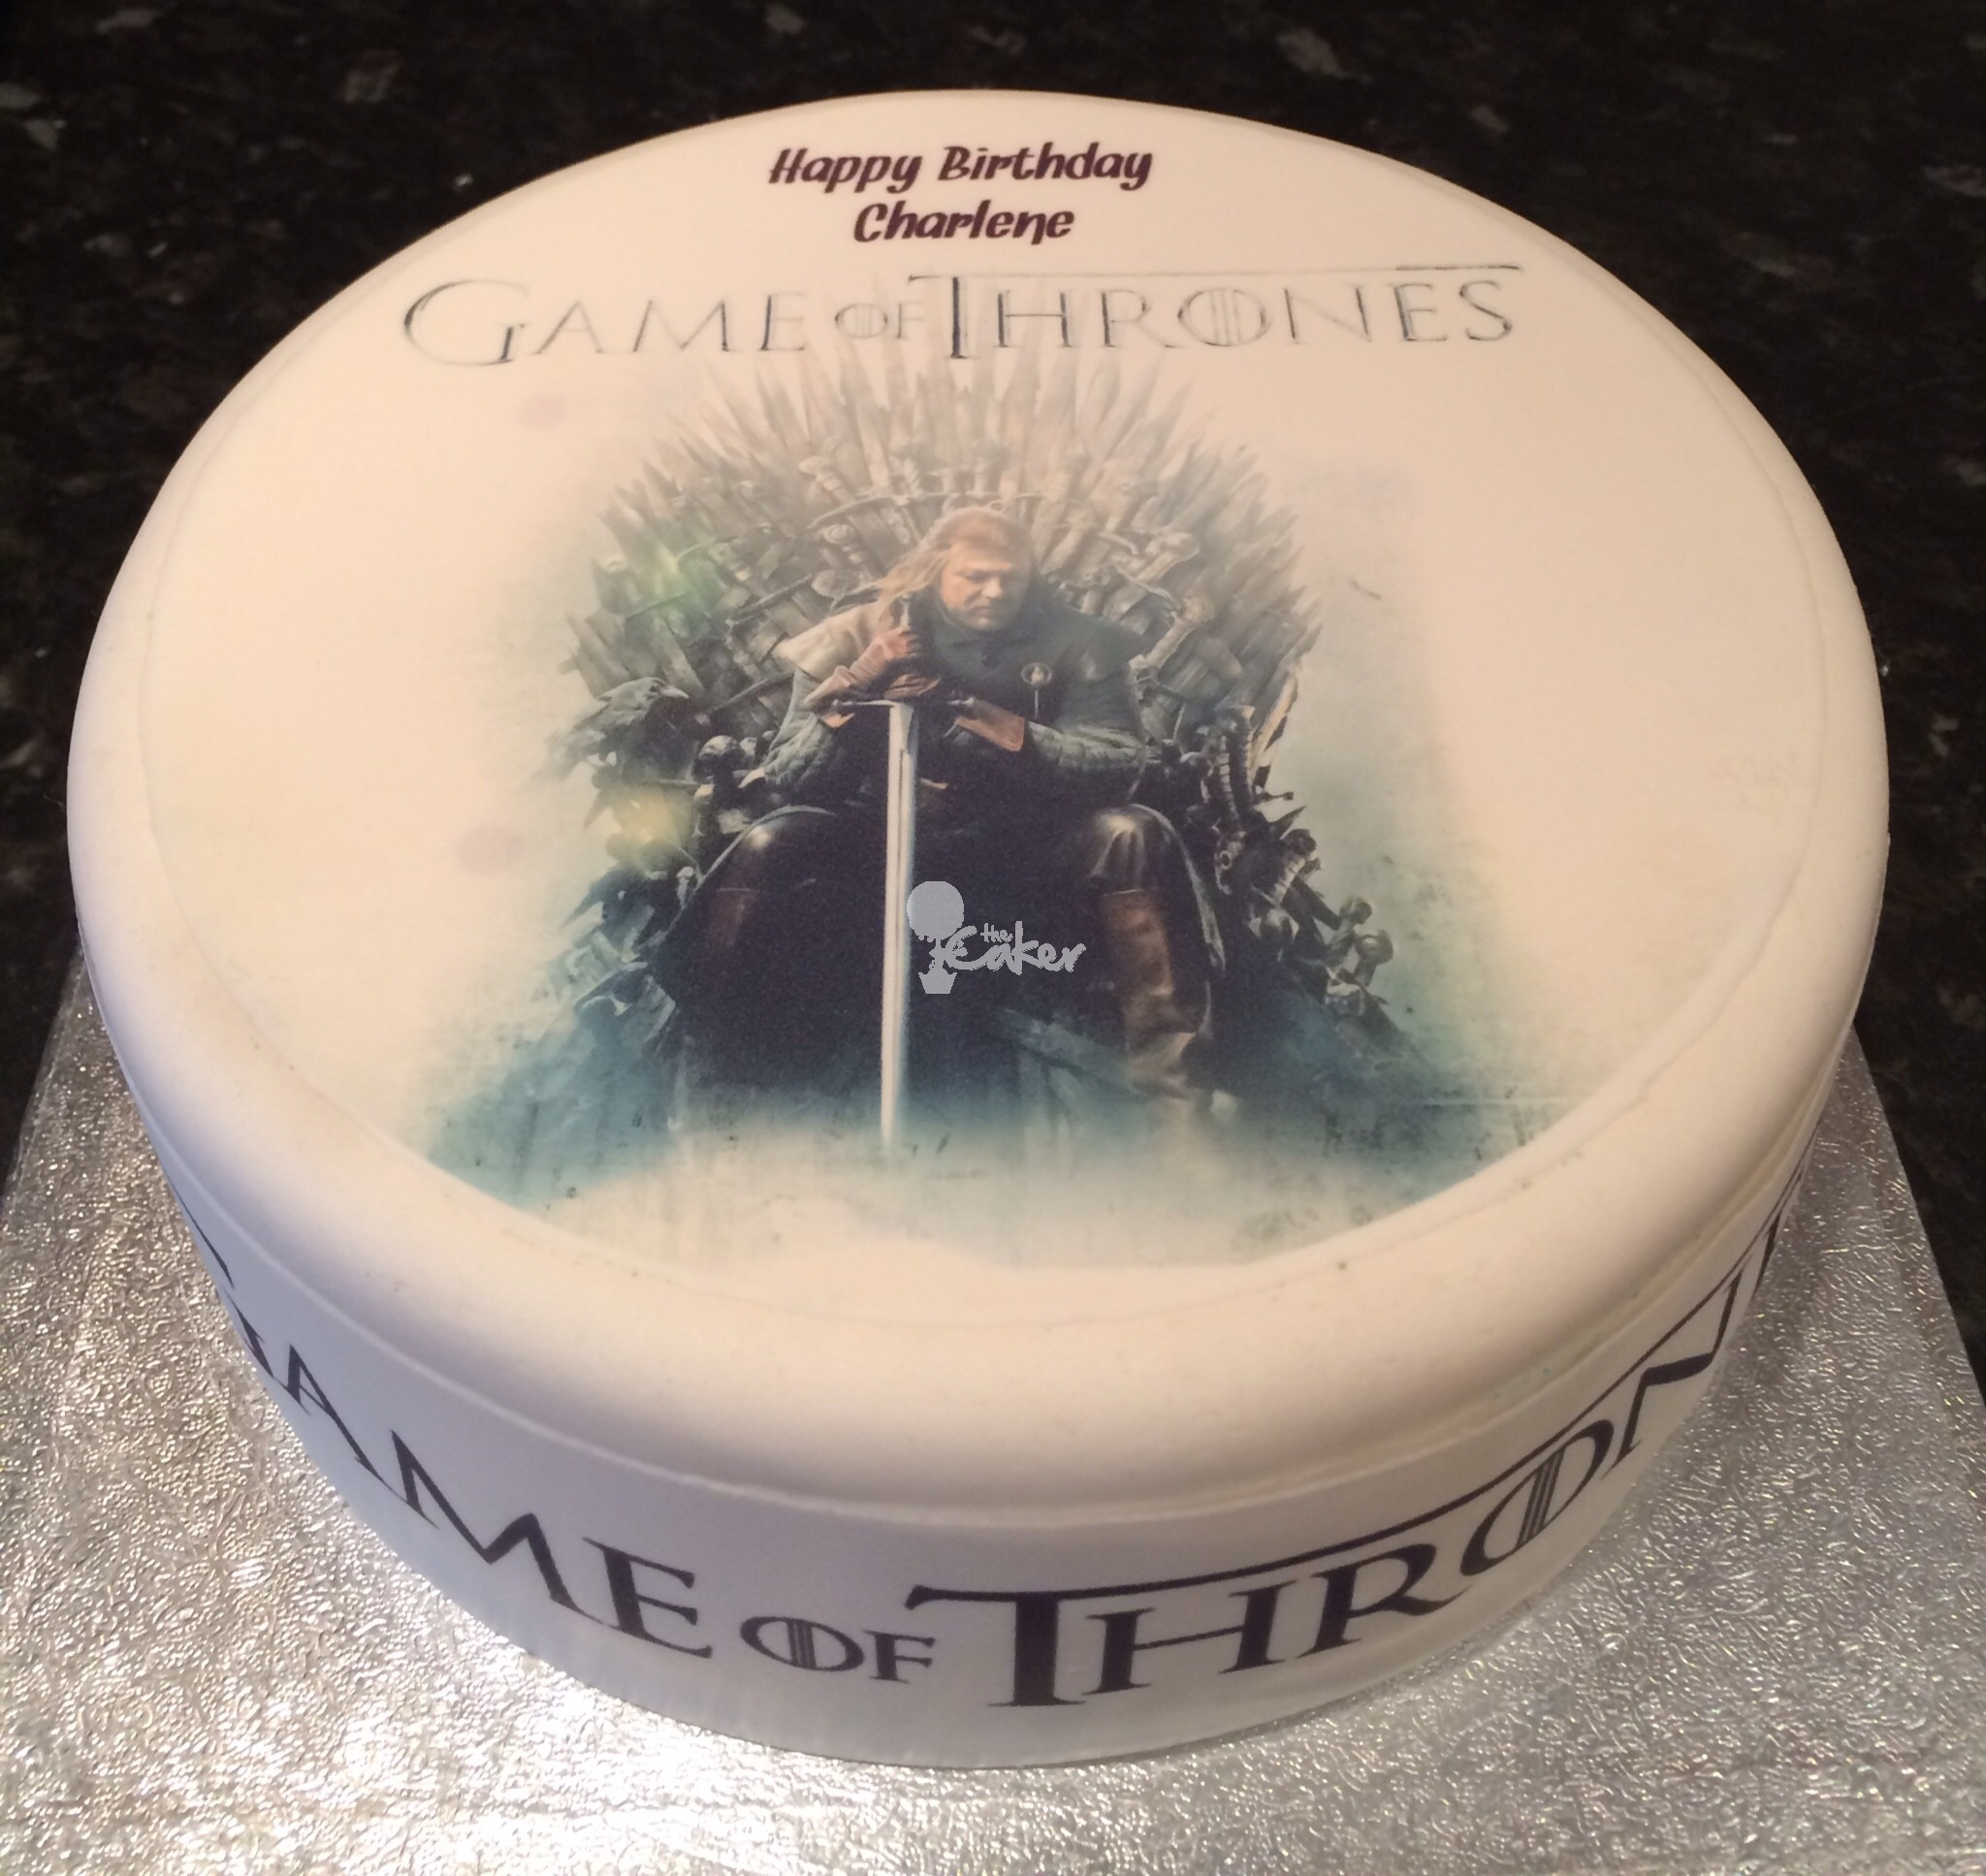 25-game-of-thrones-theme-designer-cakes-cupcakes-mumbai-9-got-photo-cake